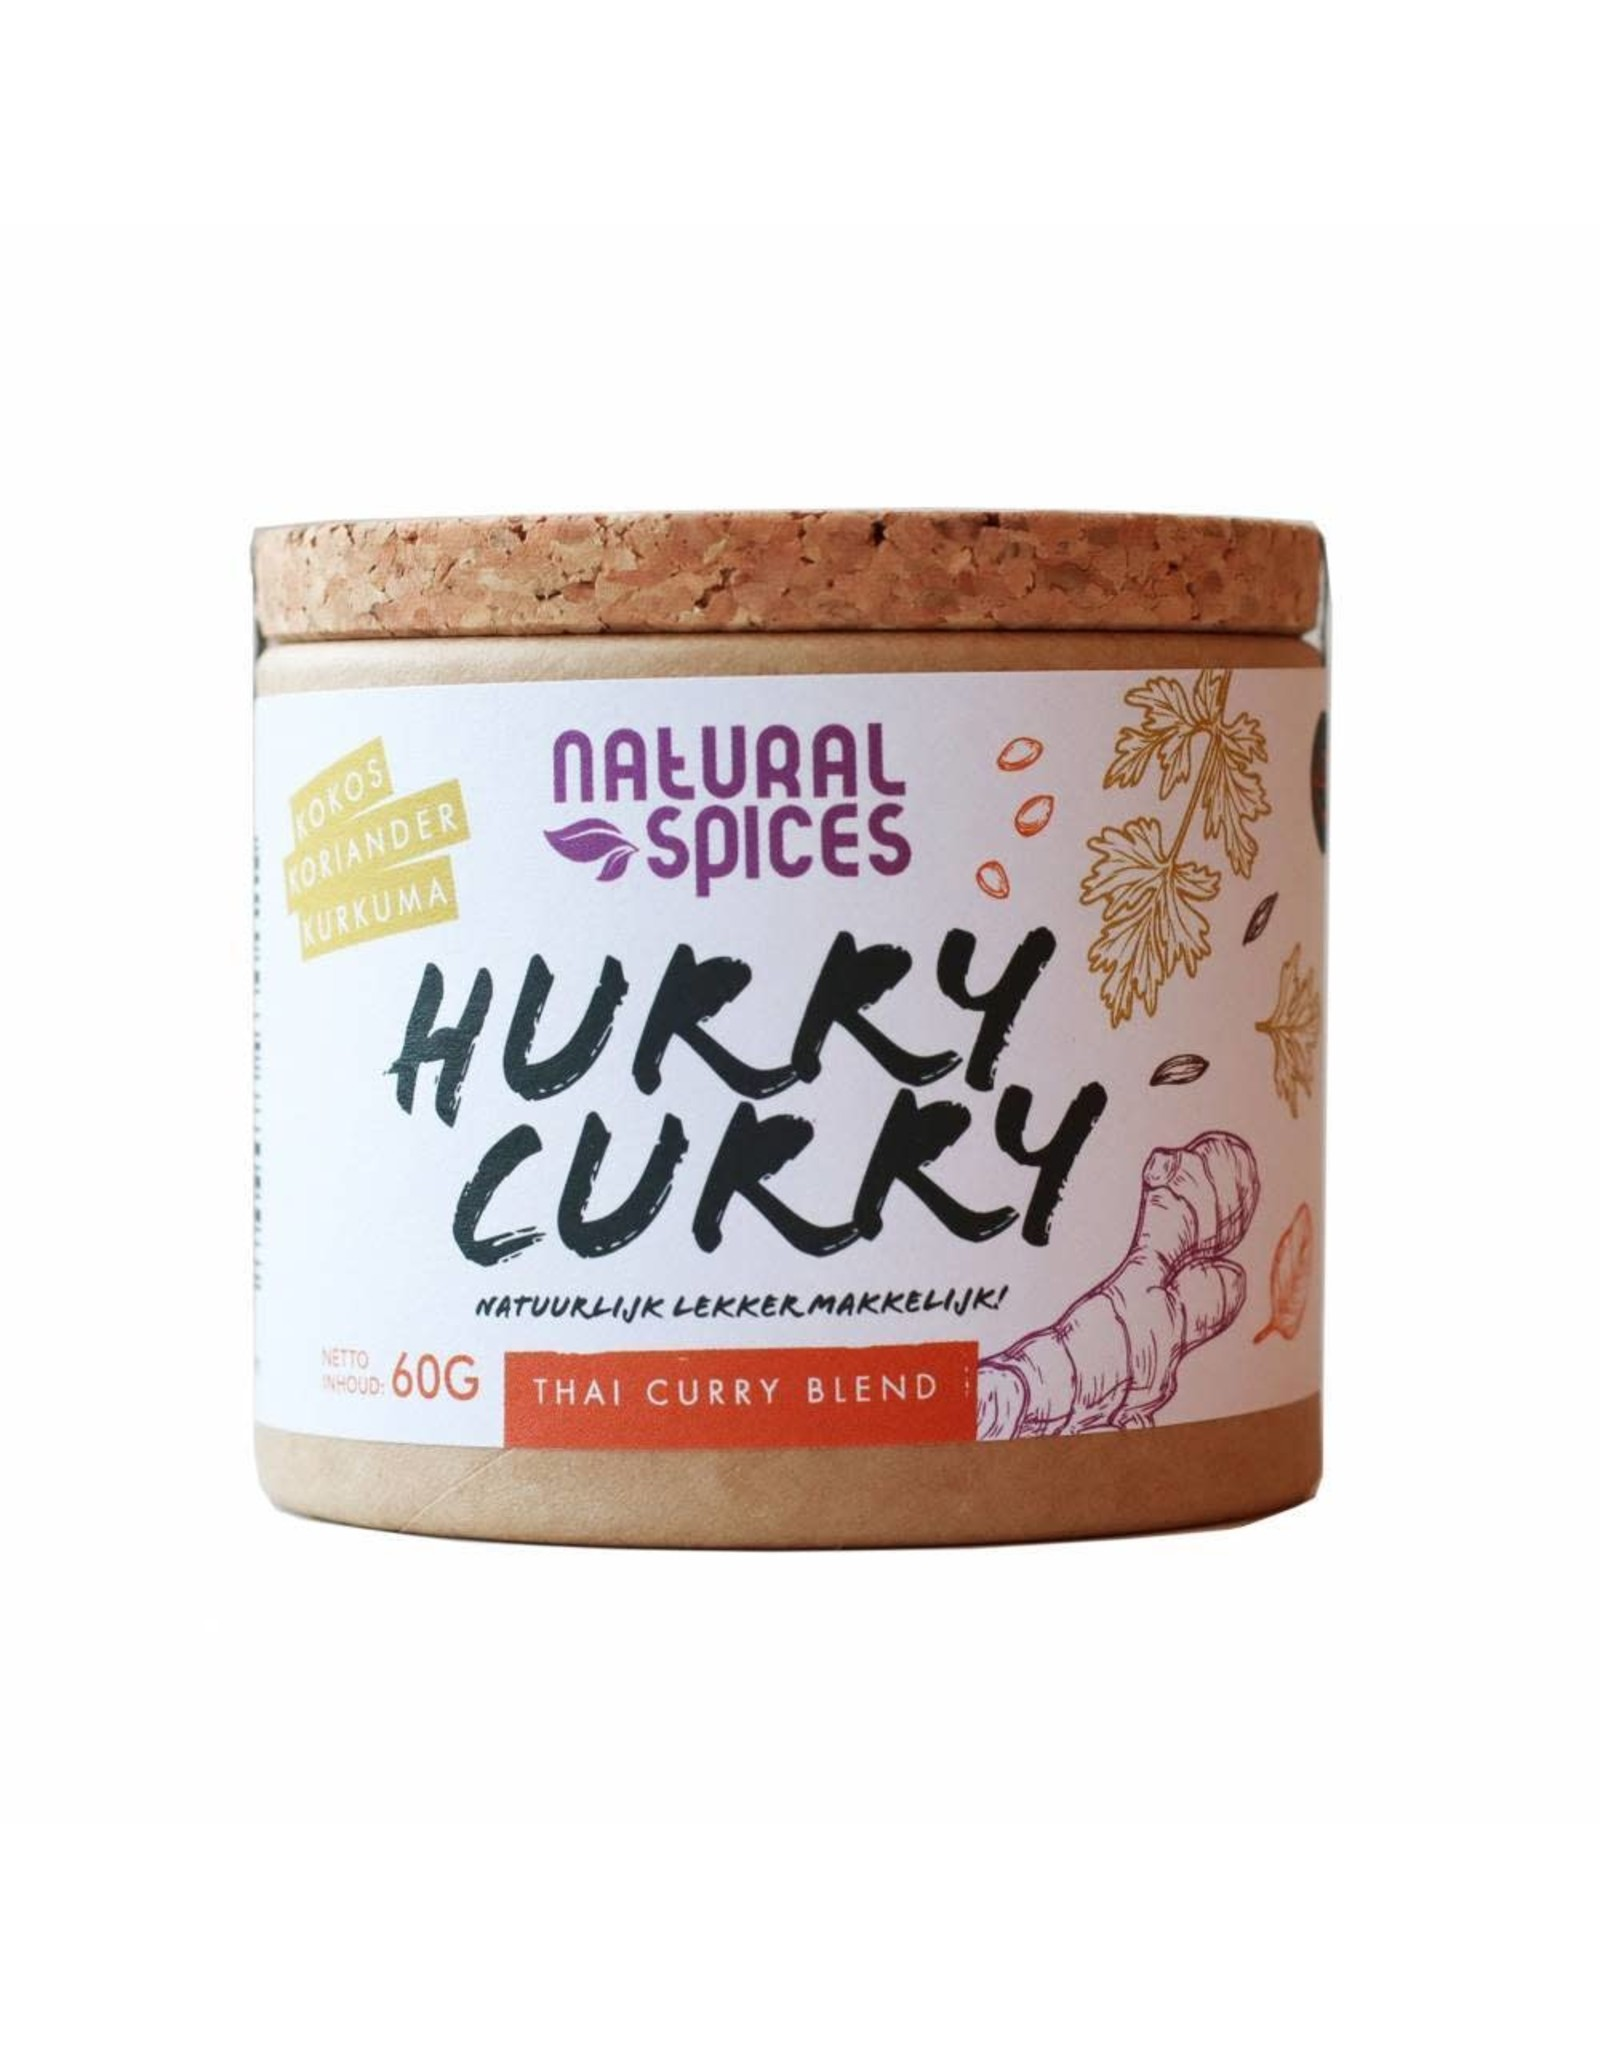 NATURAL SPICES NATURAL SPICES 2003 60GRAM HURRY CURRY